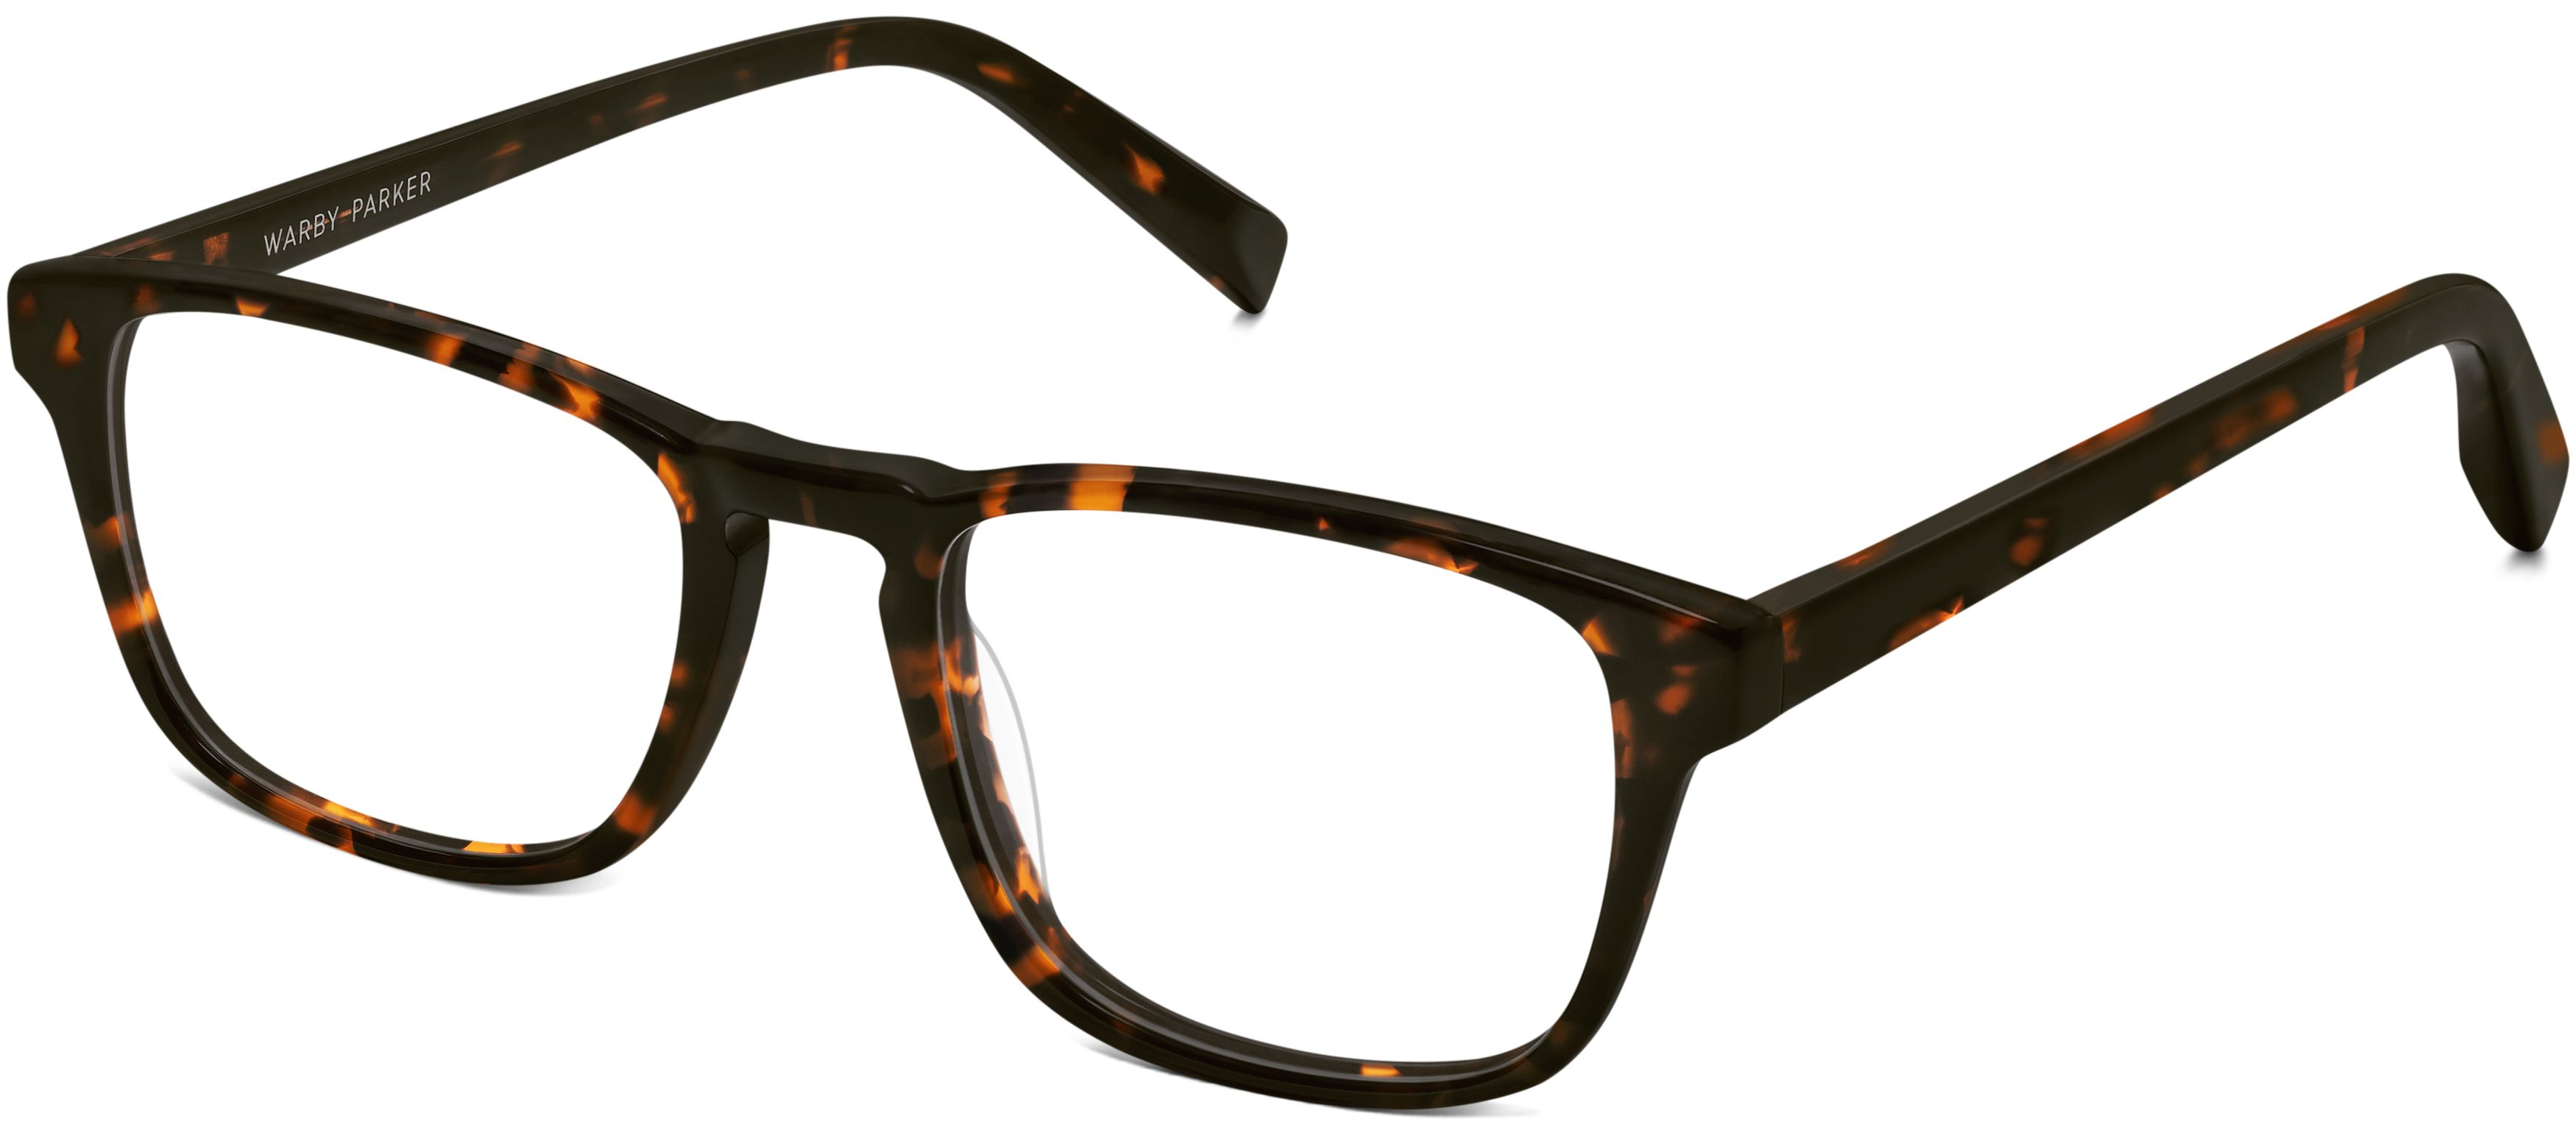 Bensen Eyeglasses in Whiskey Tortoise for Women | Warby Parker